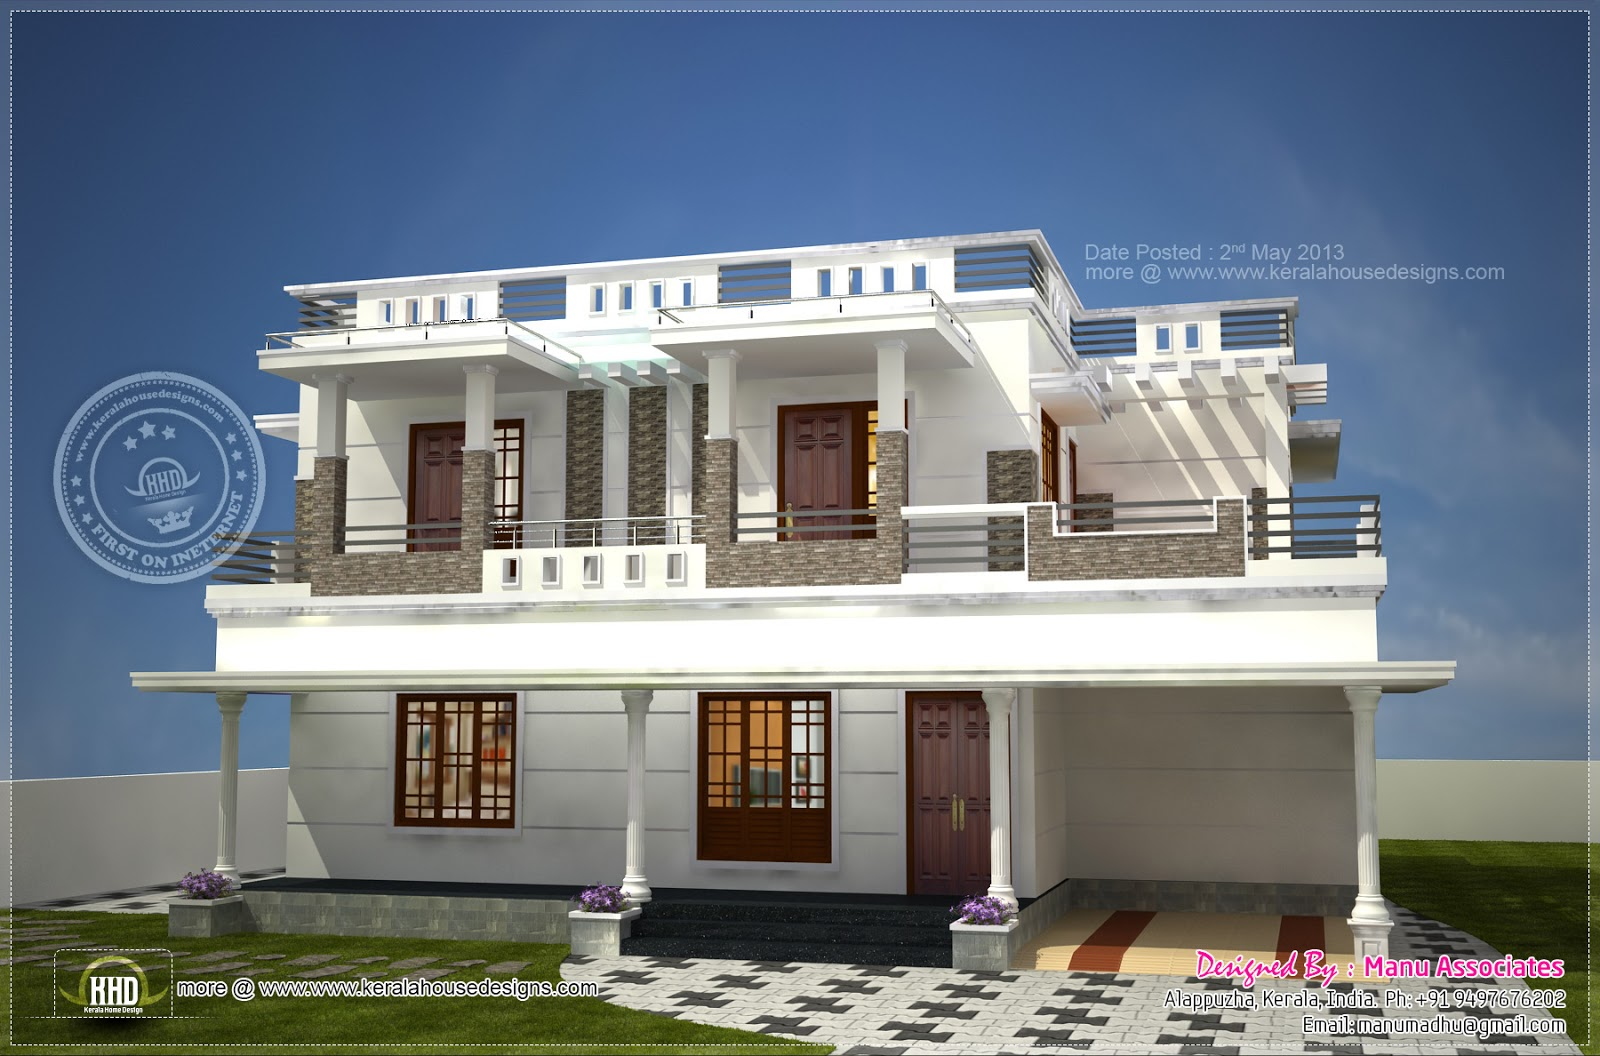 Modern home design in alappuzha kerala house design plans Design home modern